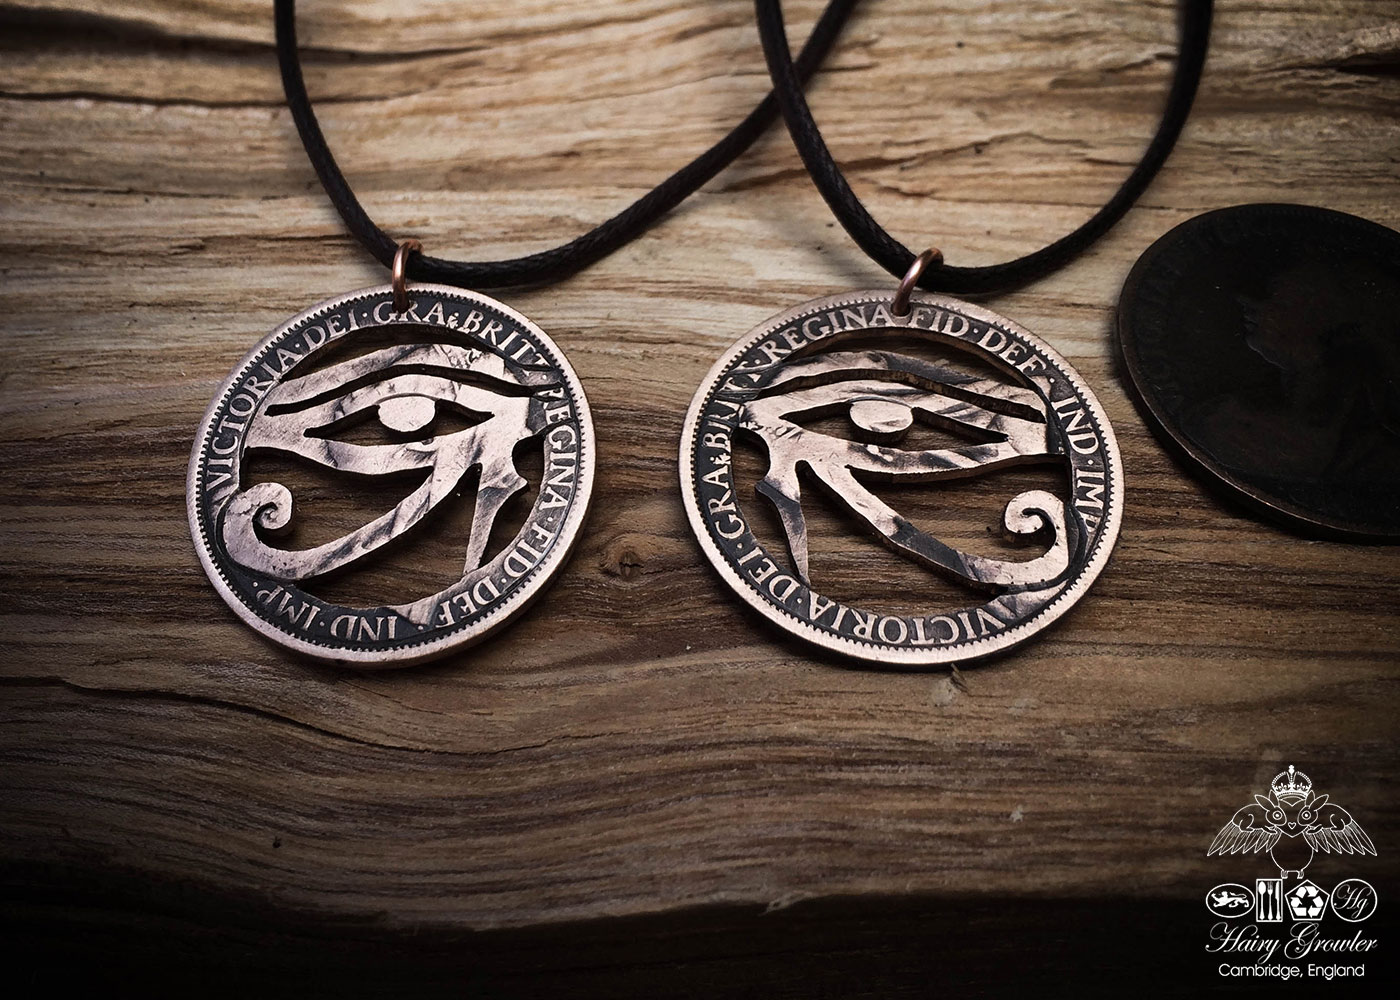 Handcrafted and repurposed coin eye of horus pendant necklace